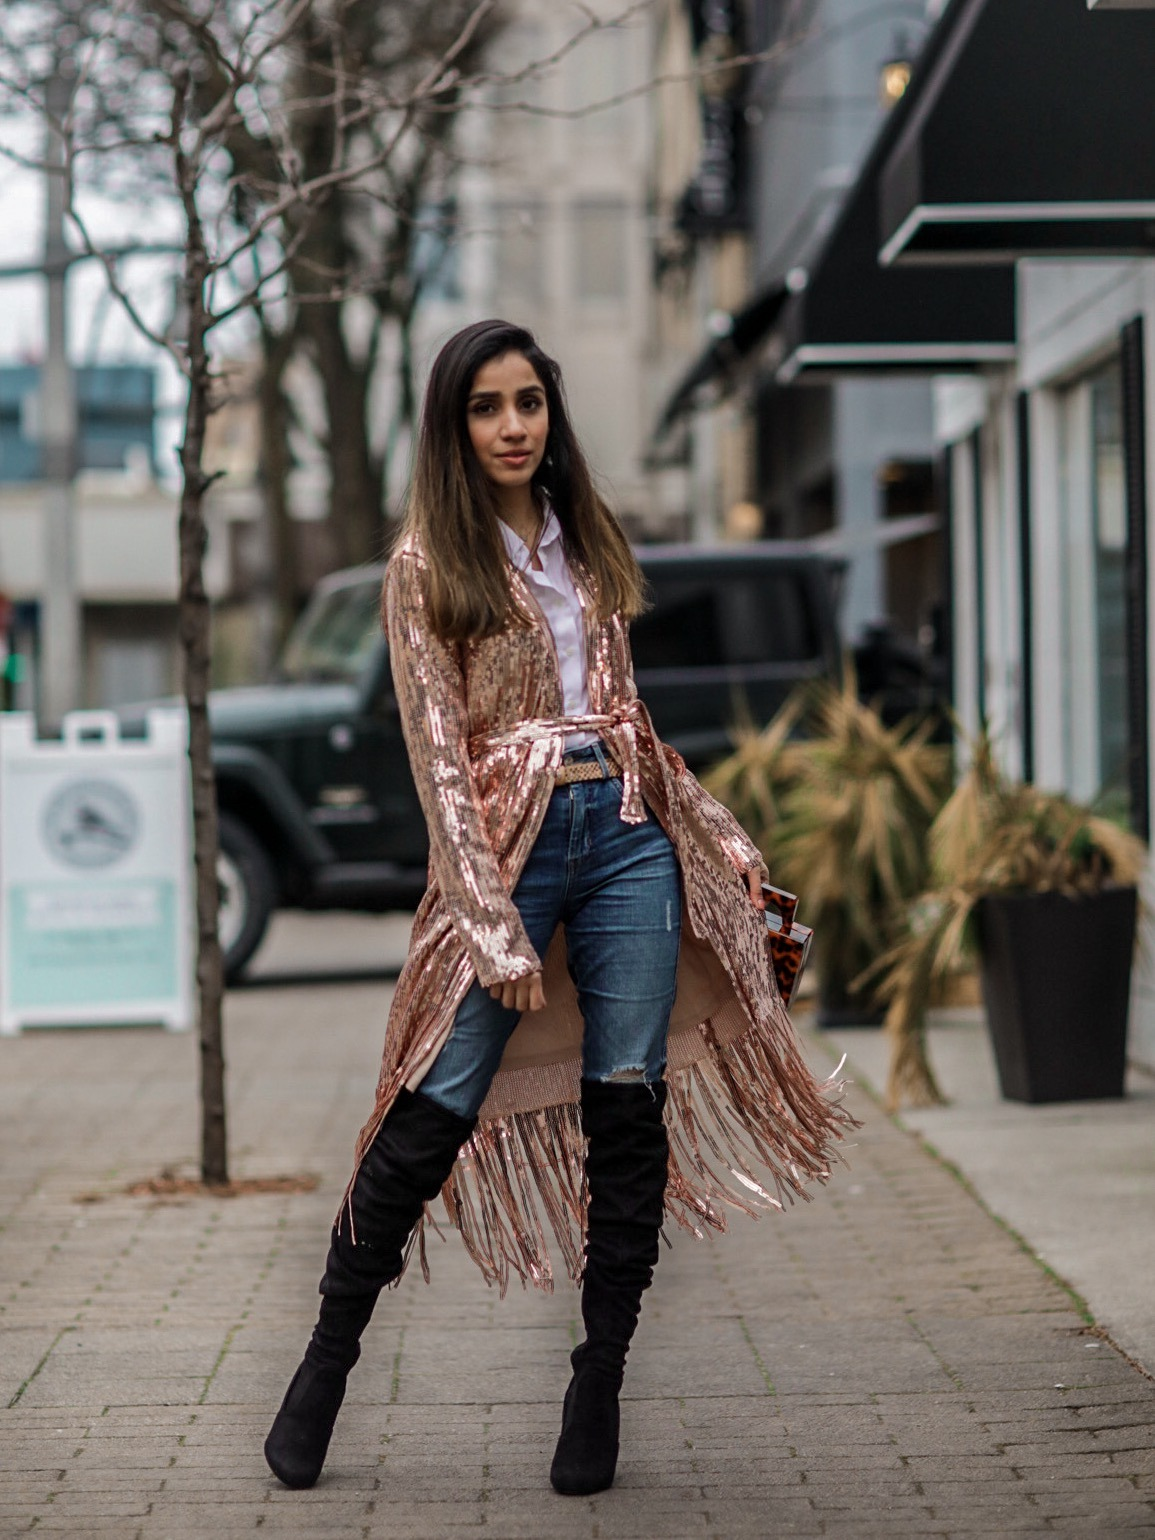 Holiday Outfits Roundup 2019 Rose Gold Sequin Fringe Duster Lulus Faiza Inam 2